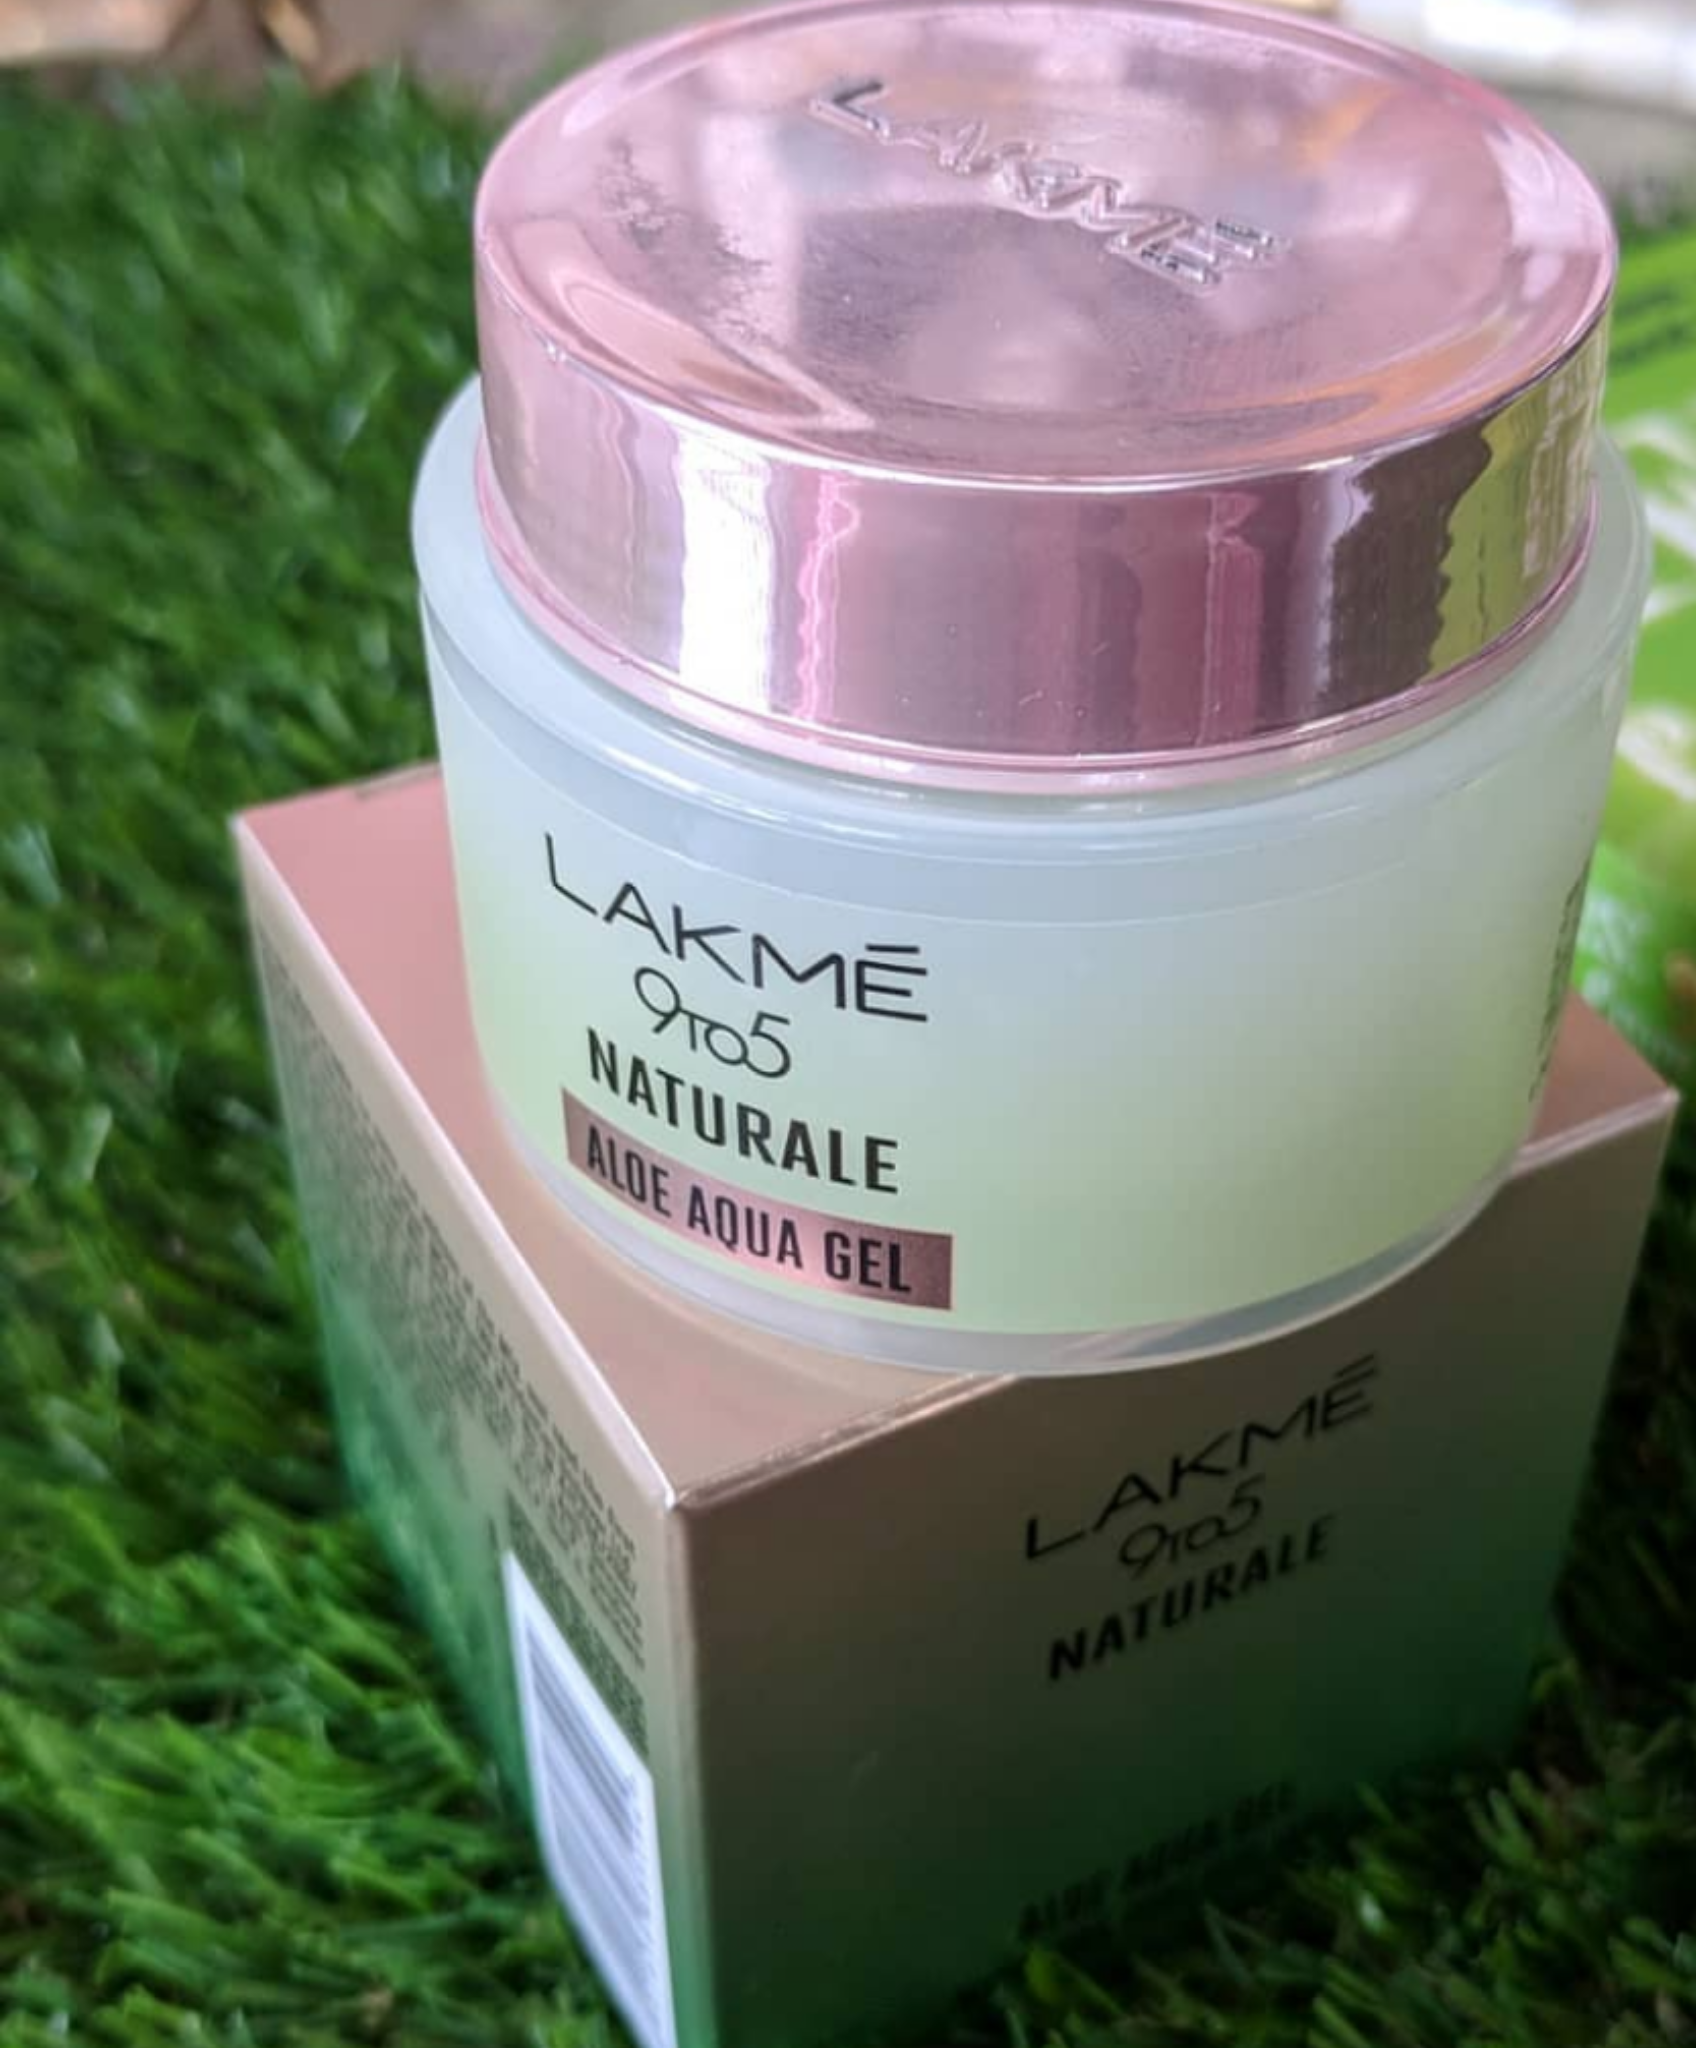 Lakme 9 To 5 Aloe Vera Gel Review Zig Zac Mania